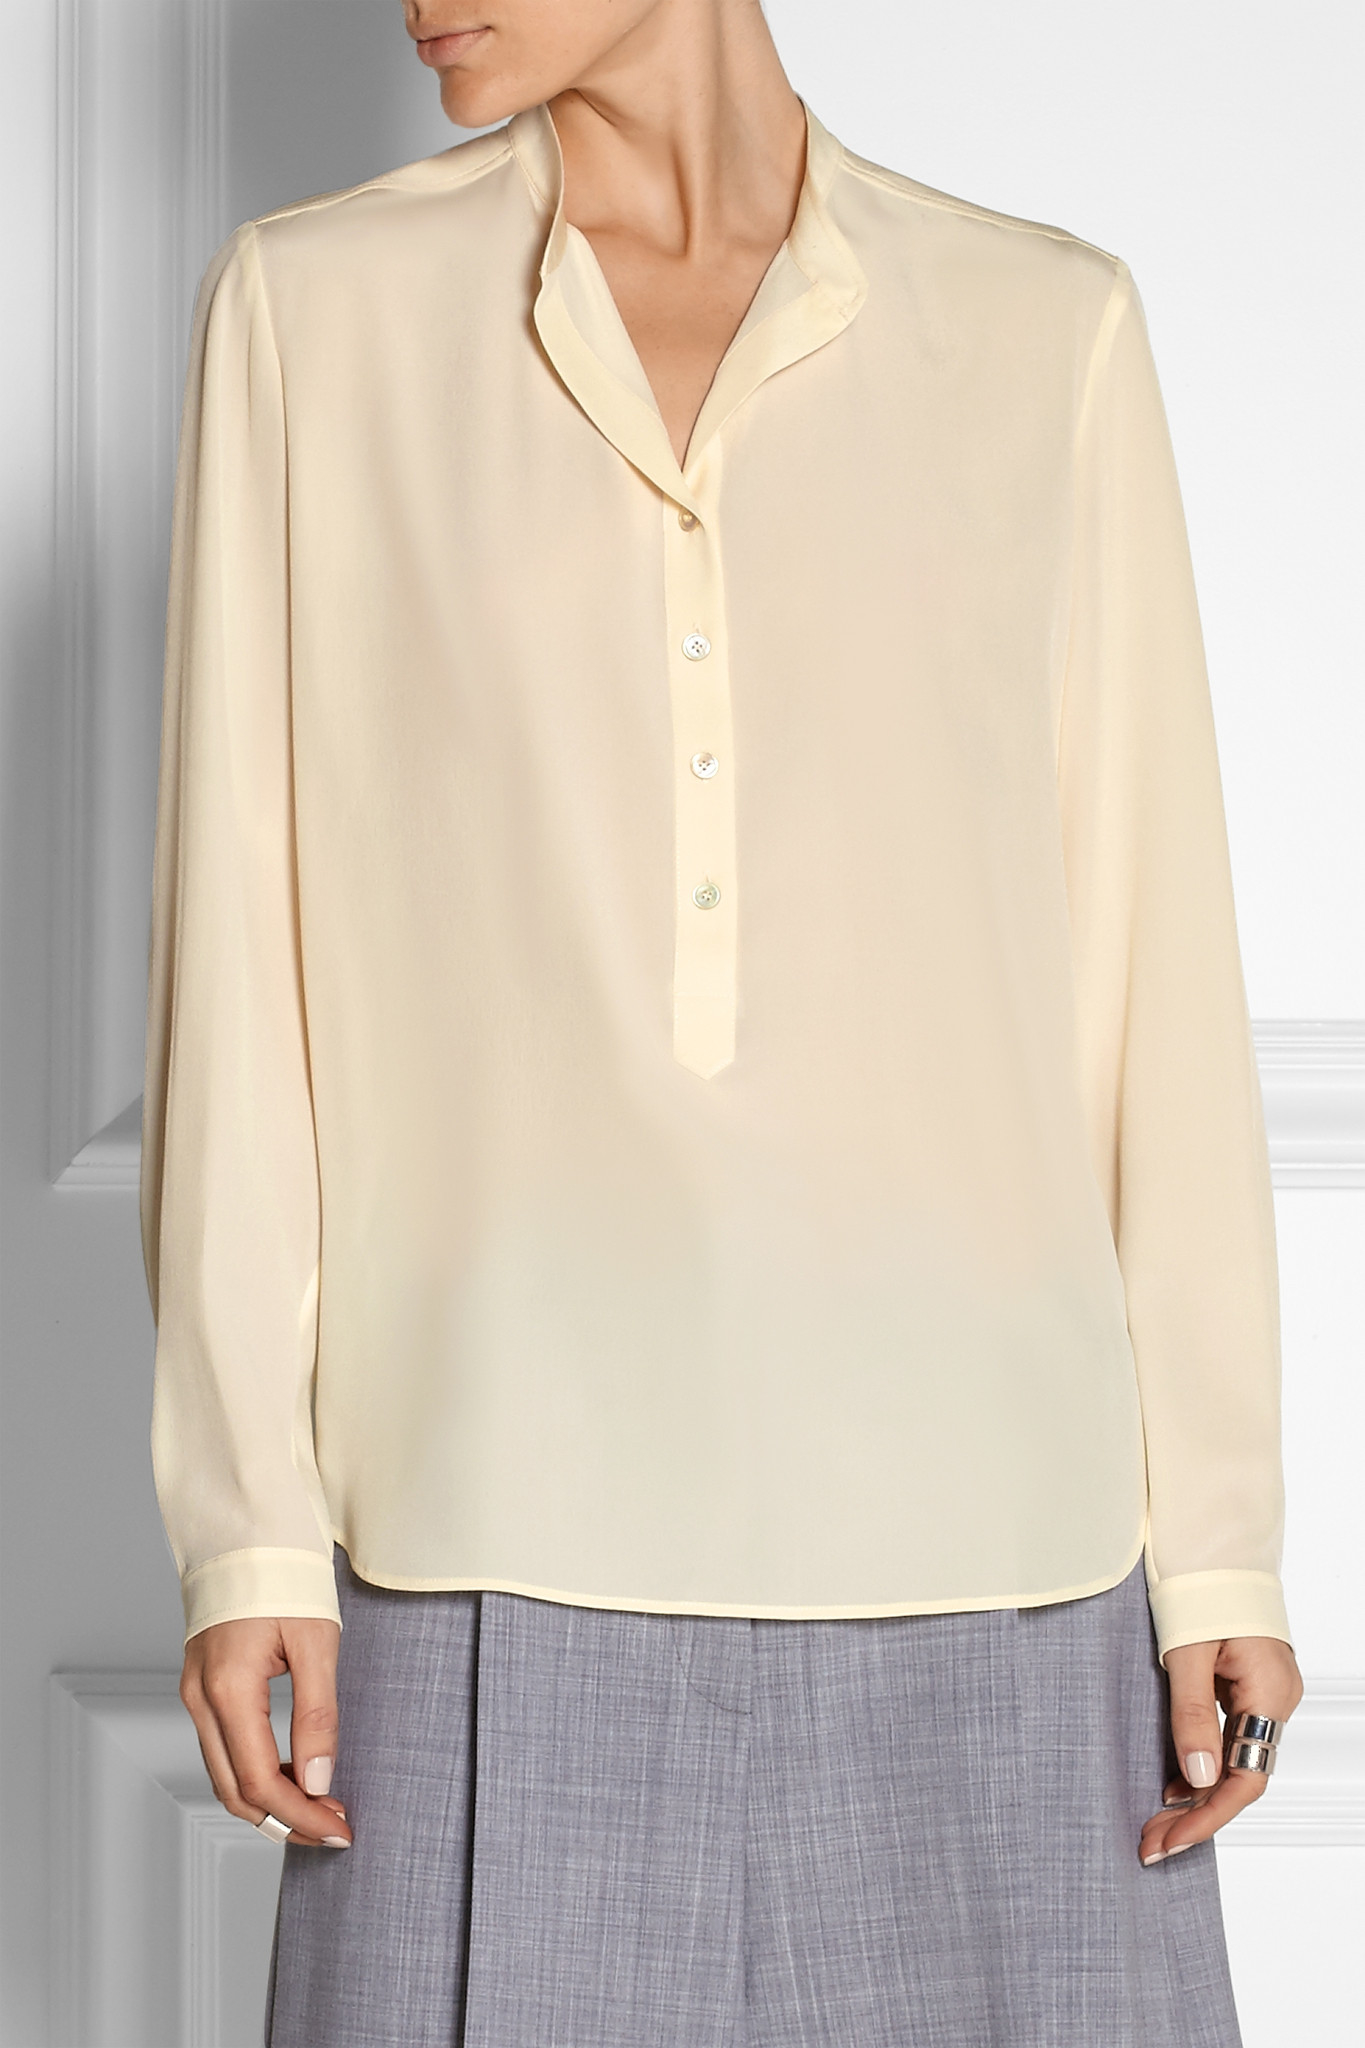 Stella McCartney Eva crepe shirt Footlocker Pictures Cheap Price In China Cheap Online Cm50PVtqu